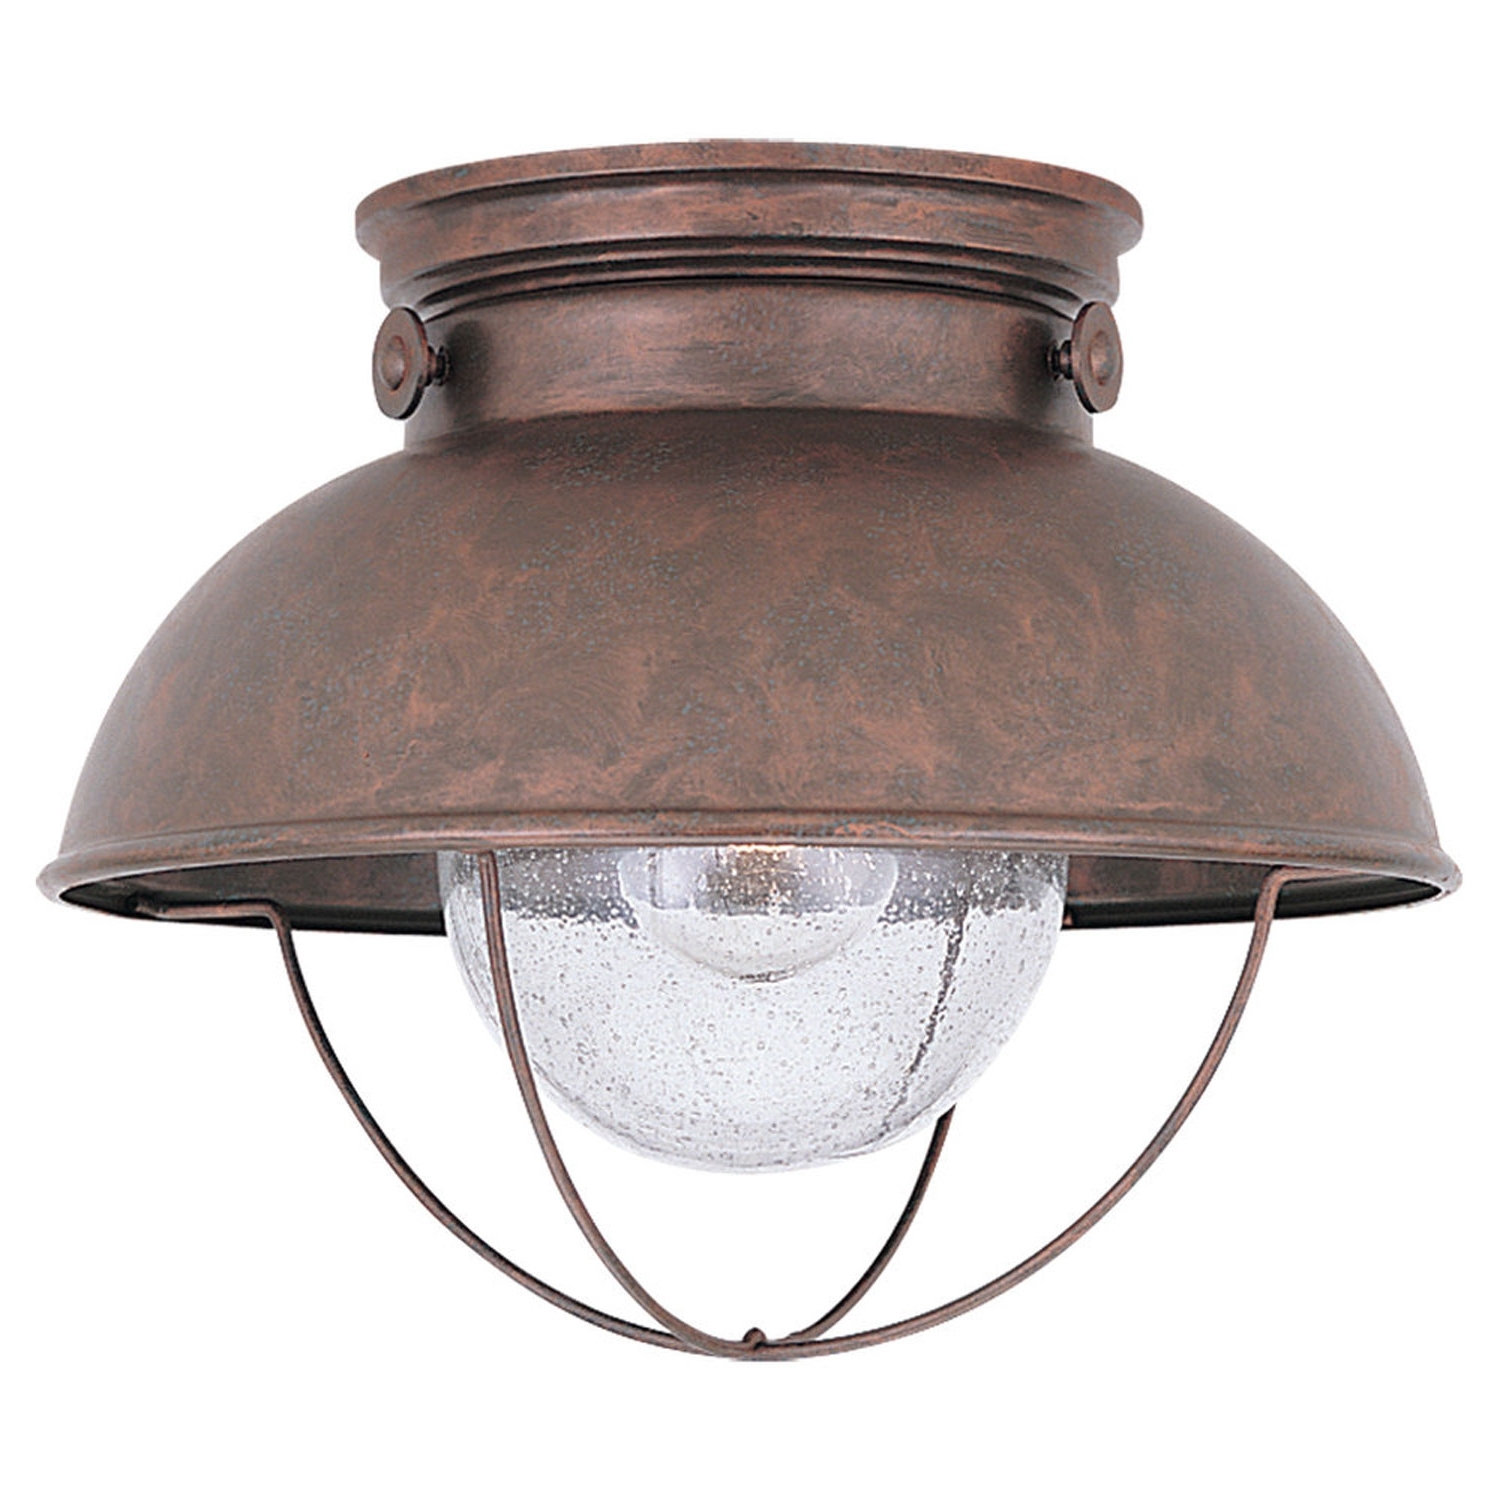 2018 Sea Gull Lighting Sebring Weathered Copper Outdoor Ceiling Light On Sale For Outdoor Ceiling Lights (Gallery 2 of 20)